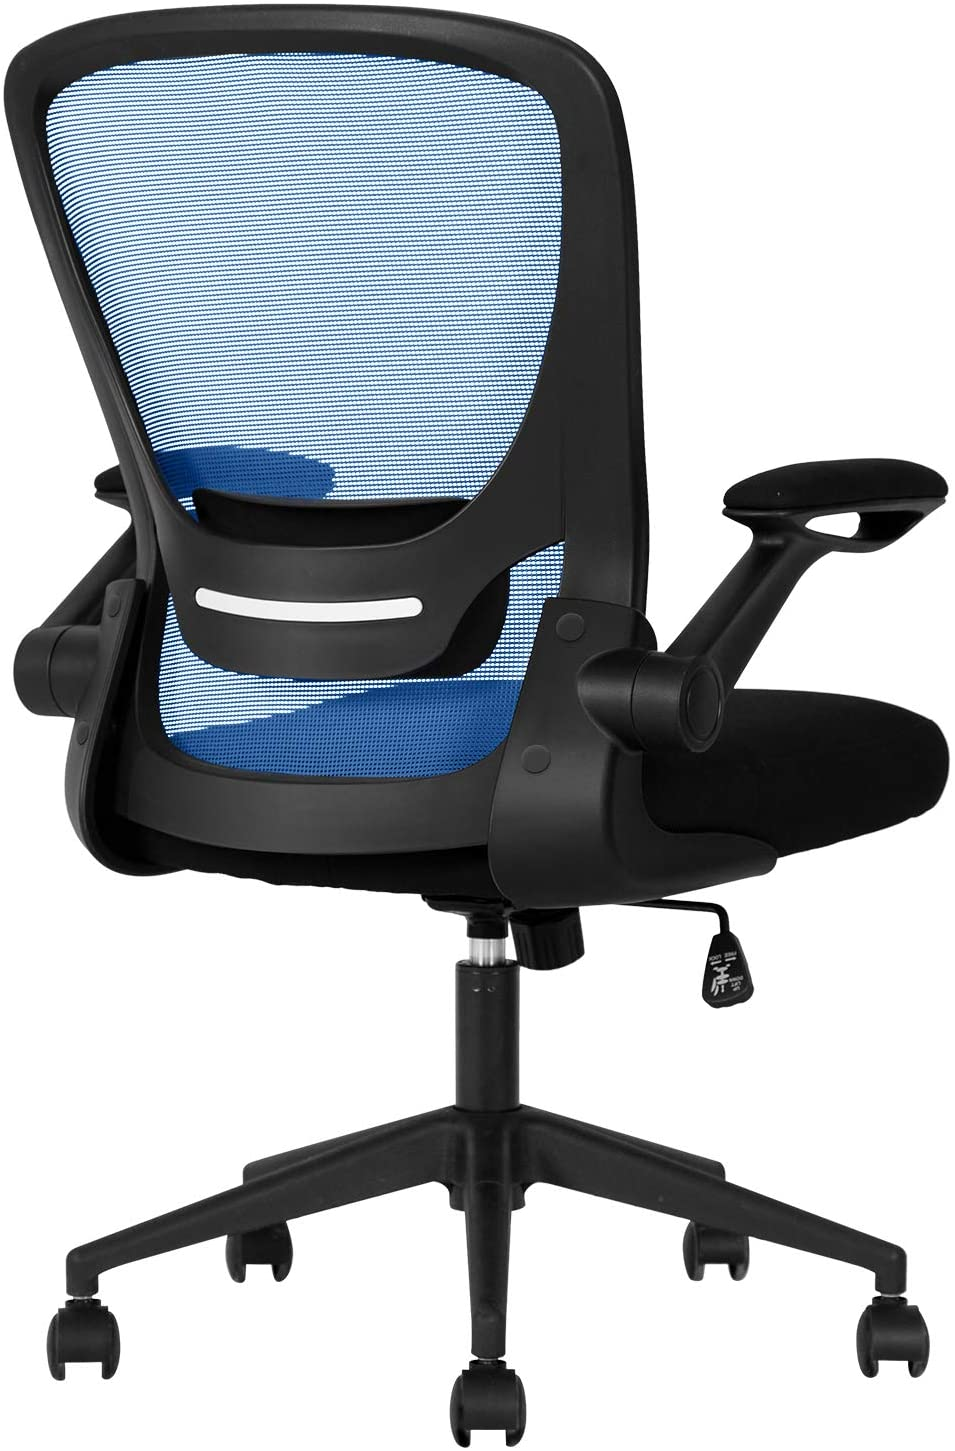 Home Office Chair Ergonomic Desk Chair Mesh Computer Chair with Lumbar Support Flip-up Arms Swivel Rolling Executive Task ChairAdjustable Chair for Adults(Blue)